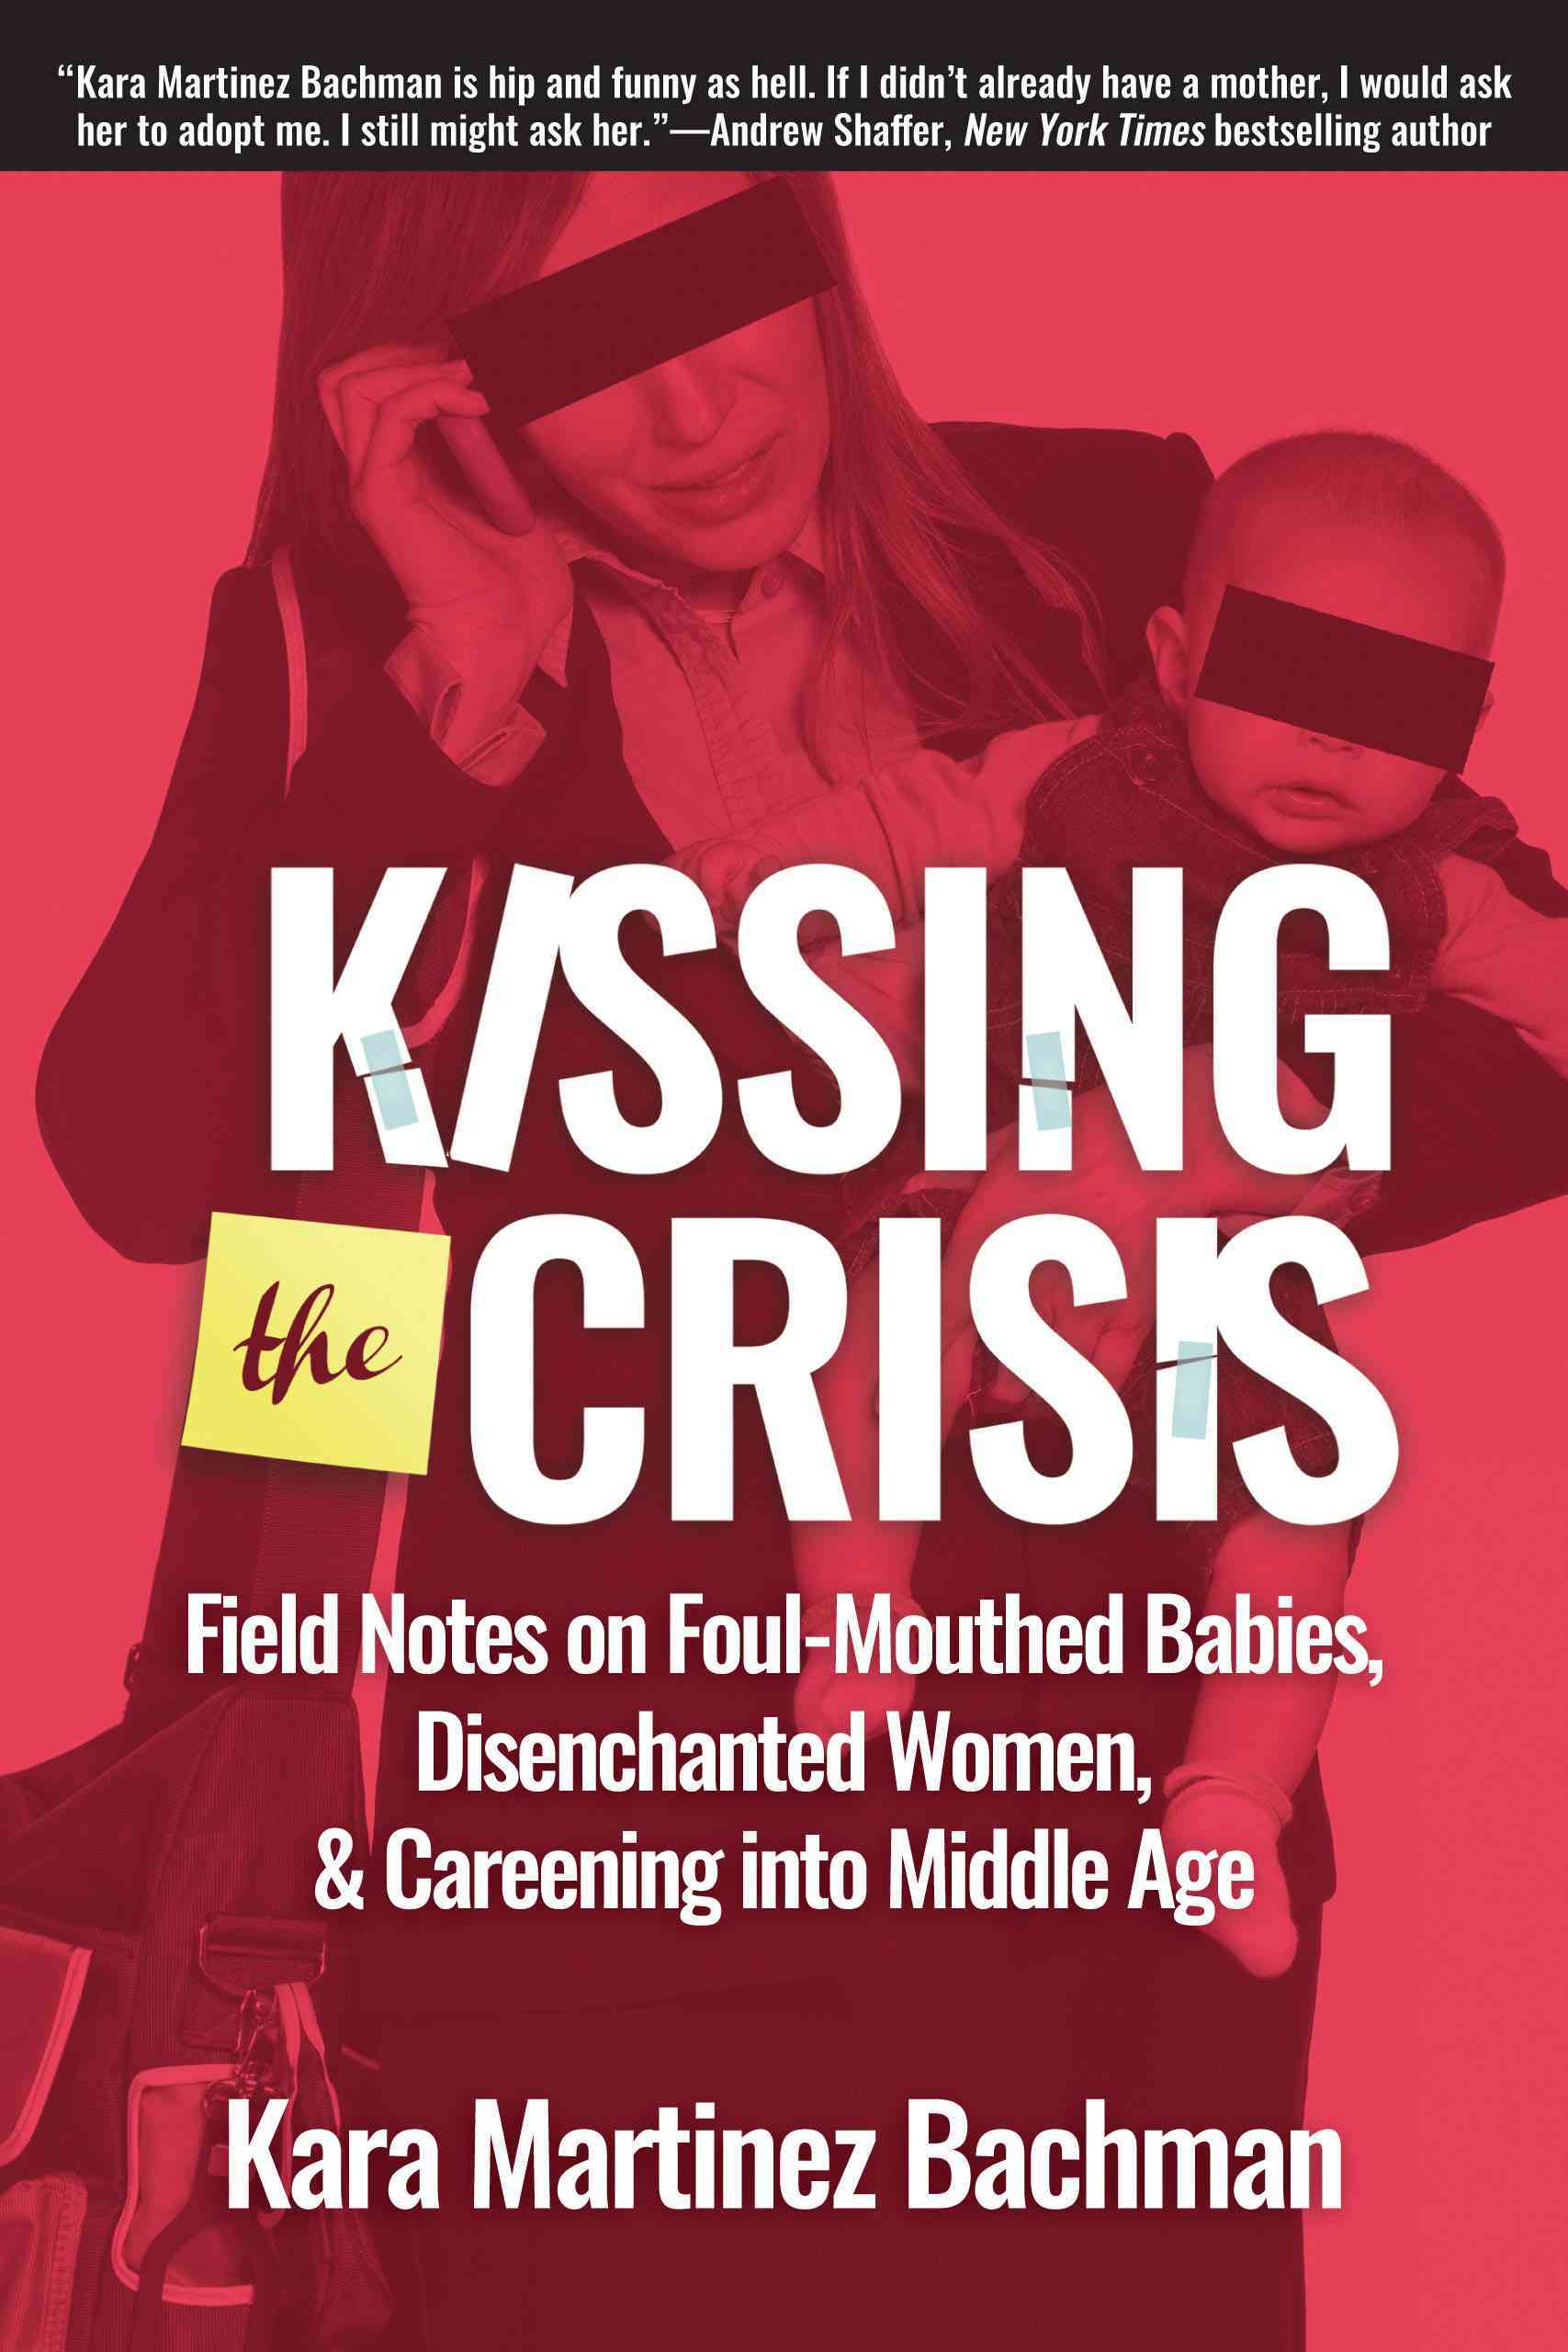 Kissing the Crisis: Field Notes on Foul-Mouthed Babies, Disenchanted Women, and Careening into Middle Age